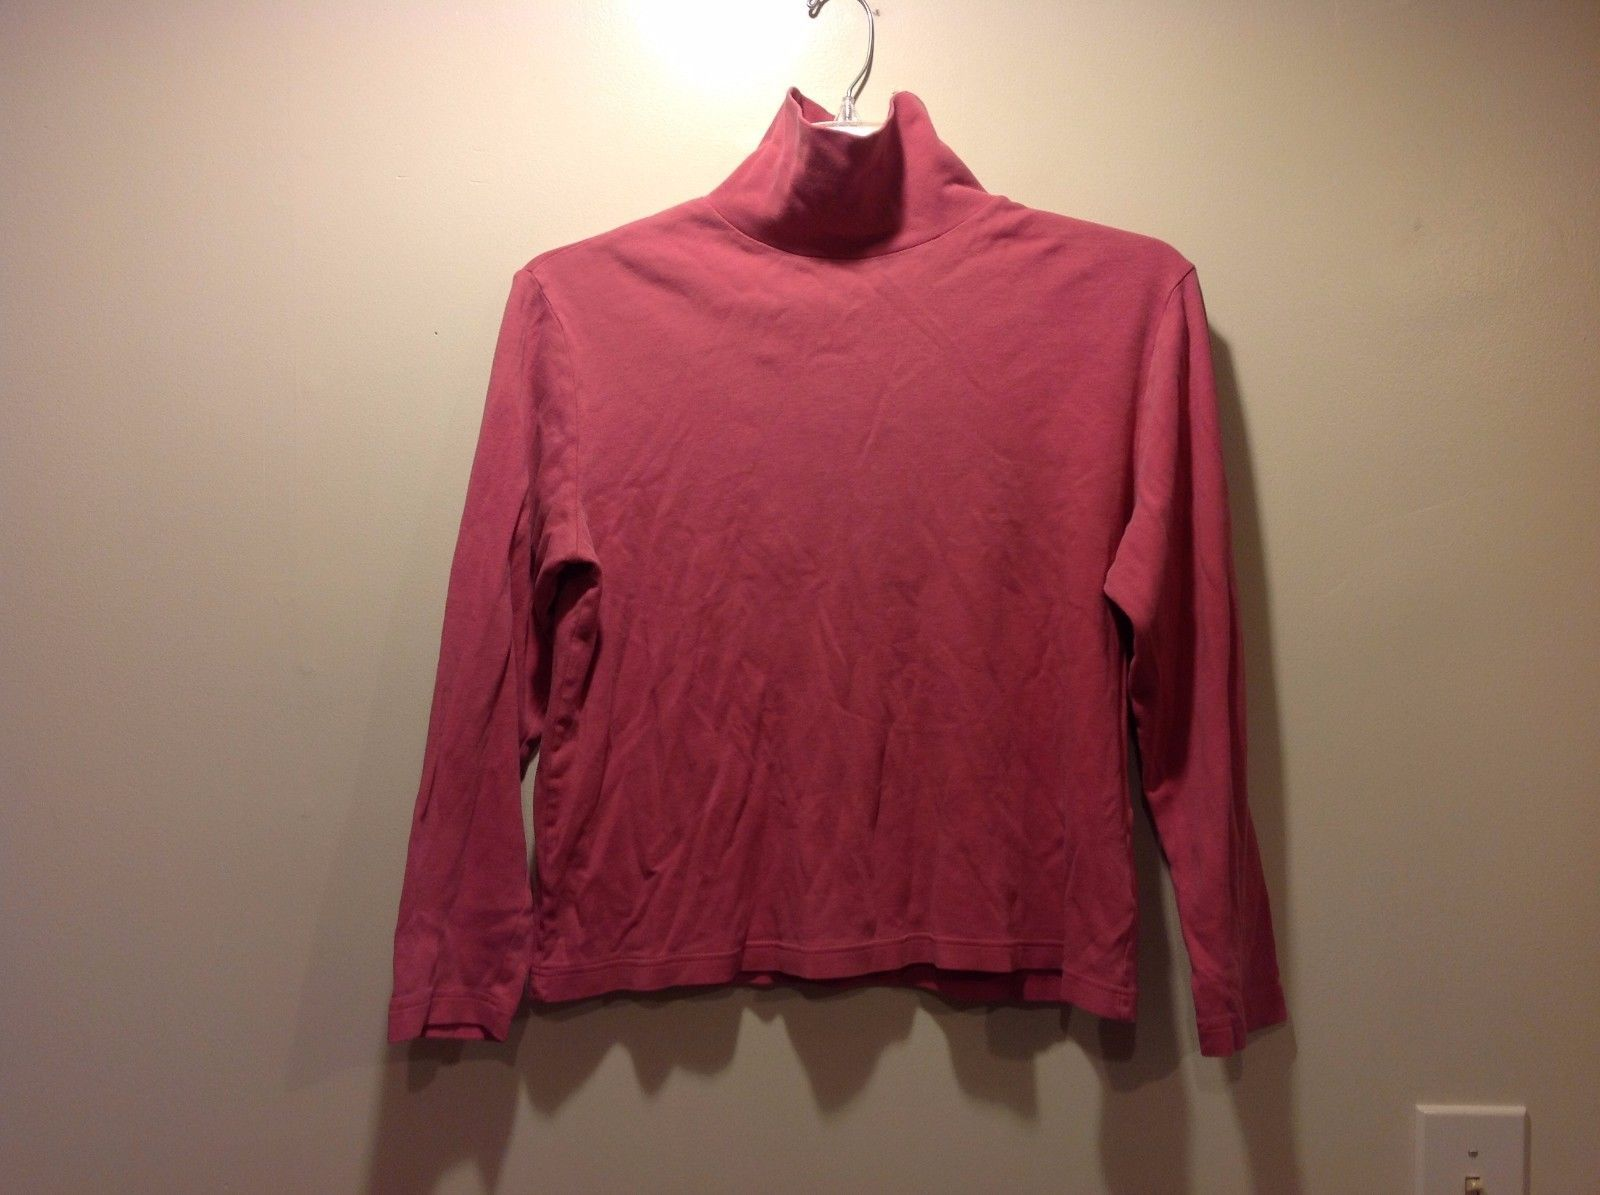 Ladies Simple Pink Long Sleeve Turtleneck by Basic Edition Sz L